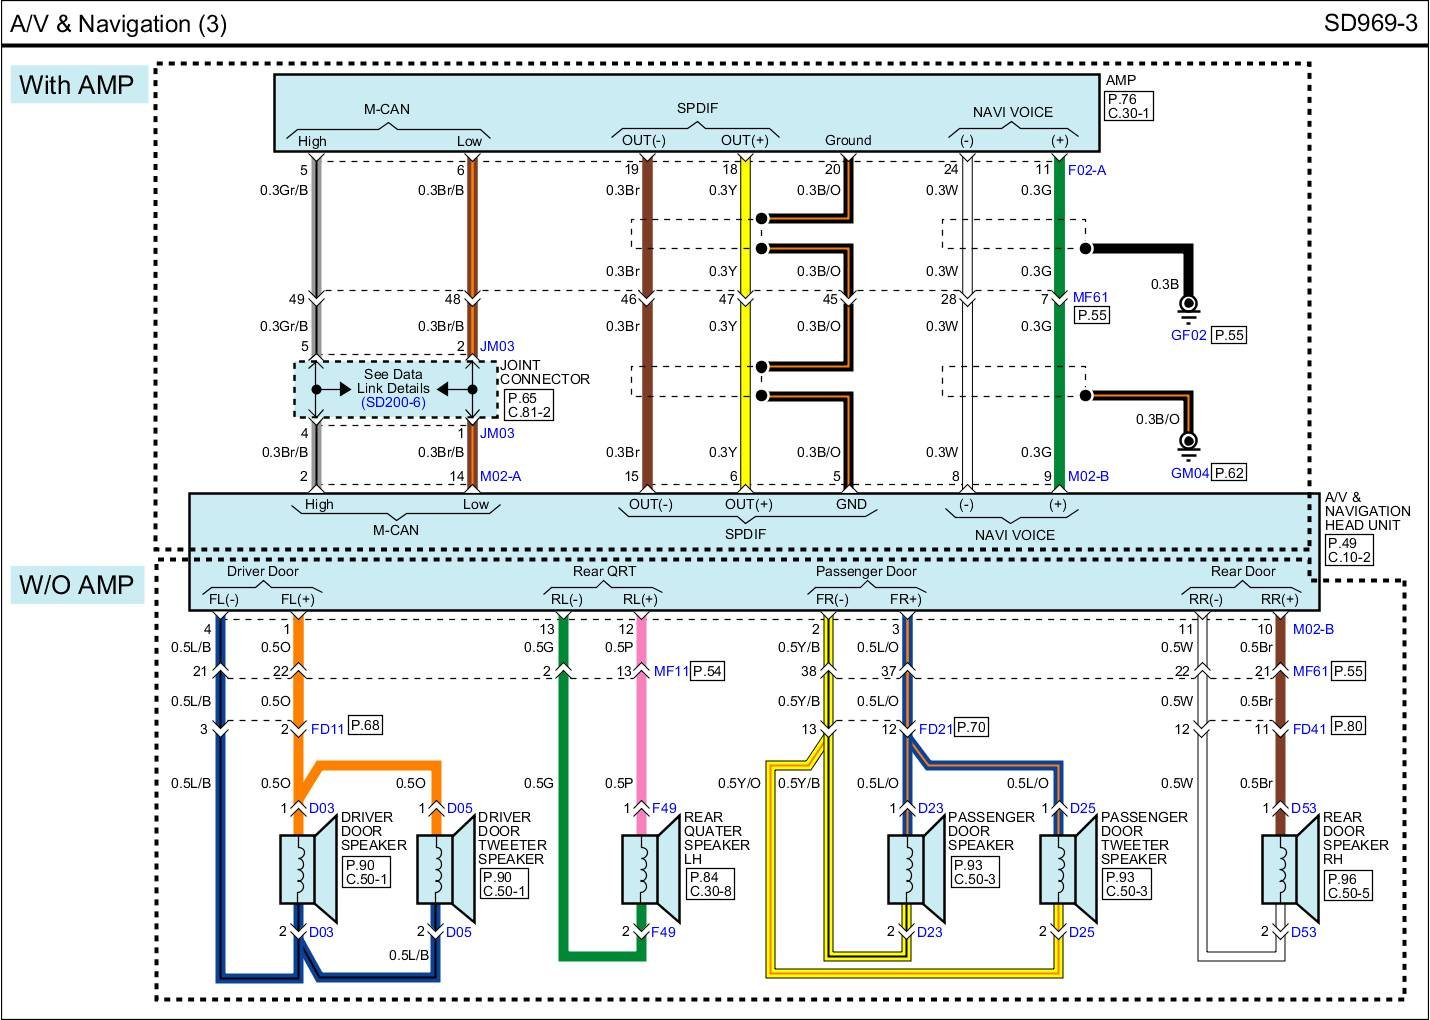 Amplifier Wiring Diagrams For 3 Aftermarket Subwoofers Problem On 2014 Veloster Turbo Page 5